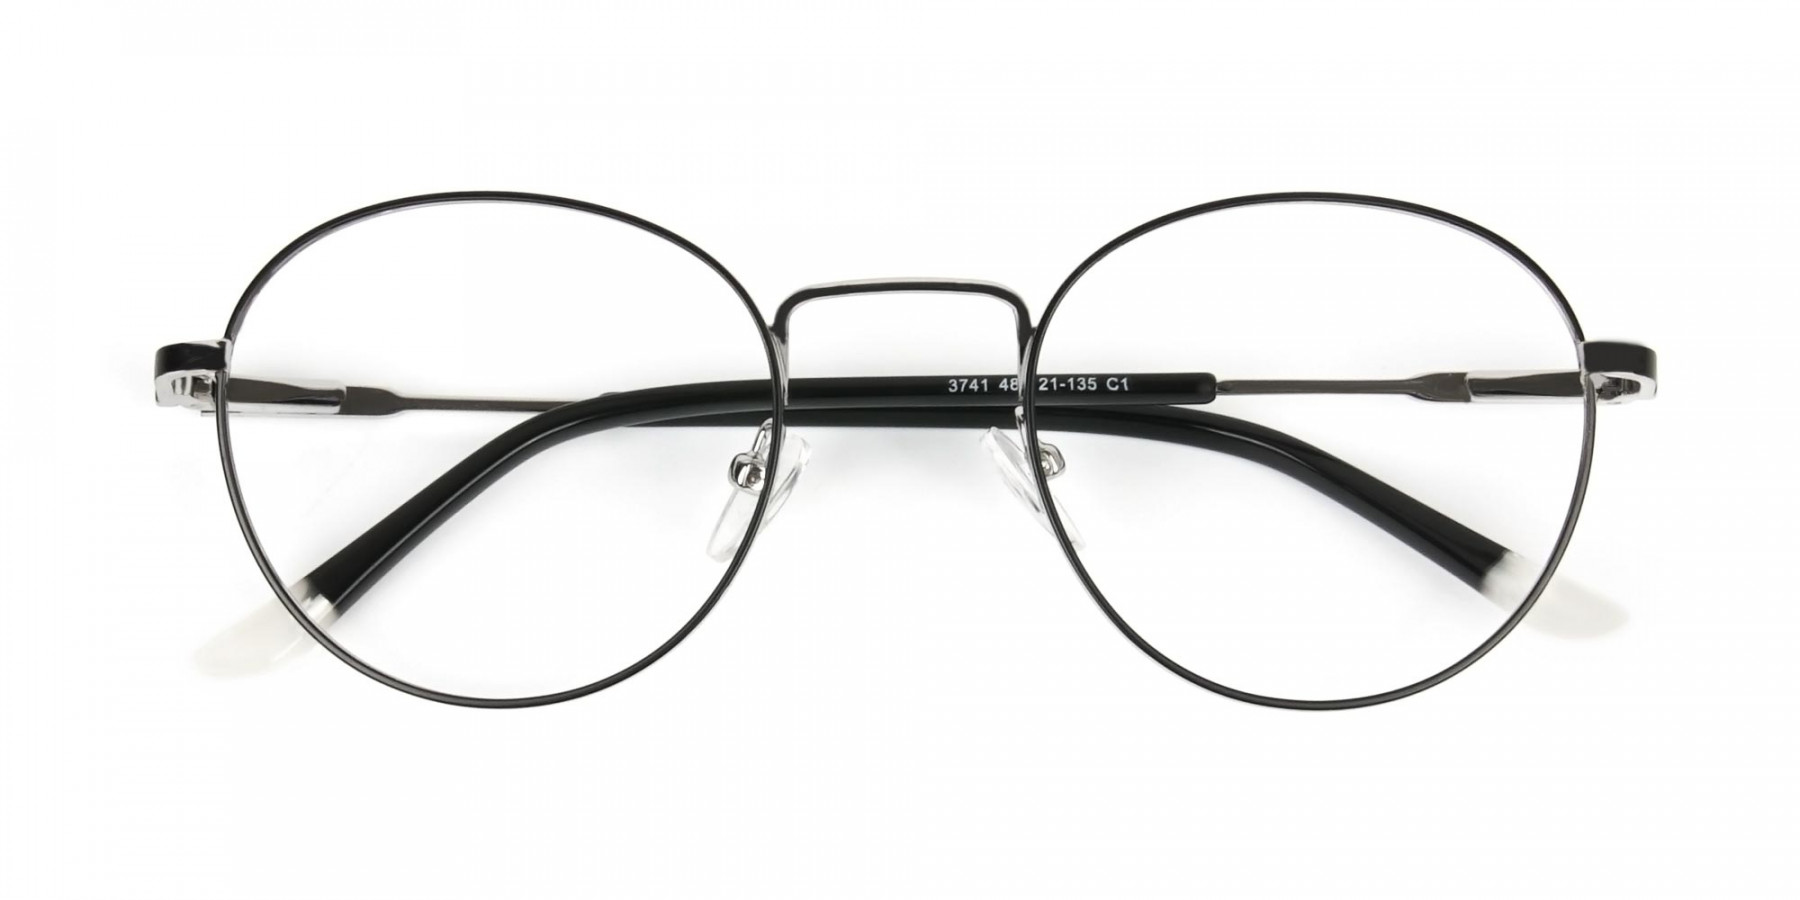 Black & Silver Round Spectacles - 1